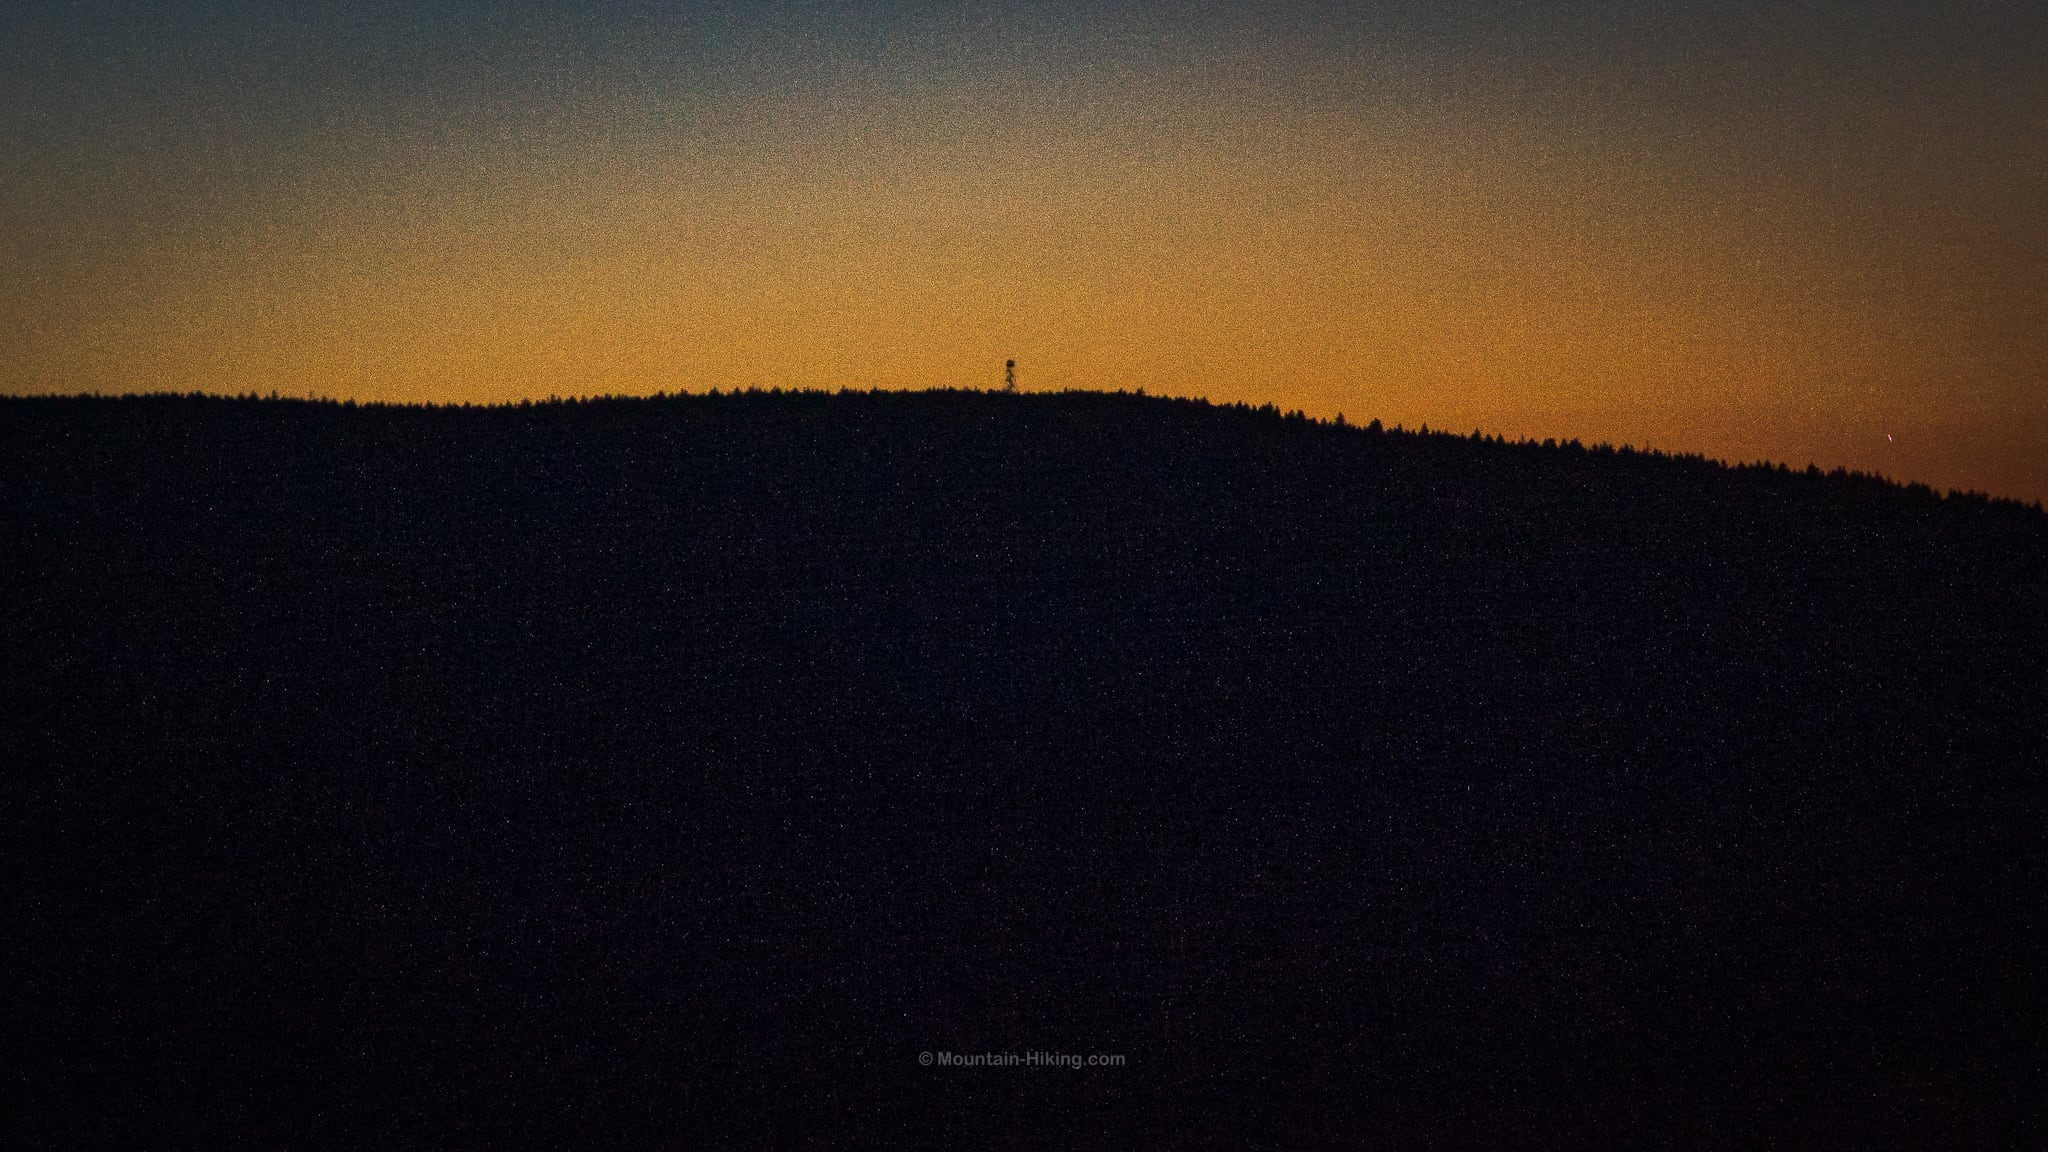 silhouette of fire tower on summit at dusk